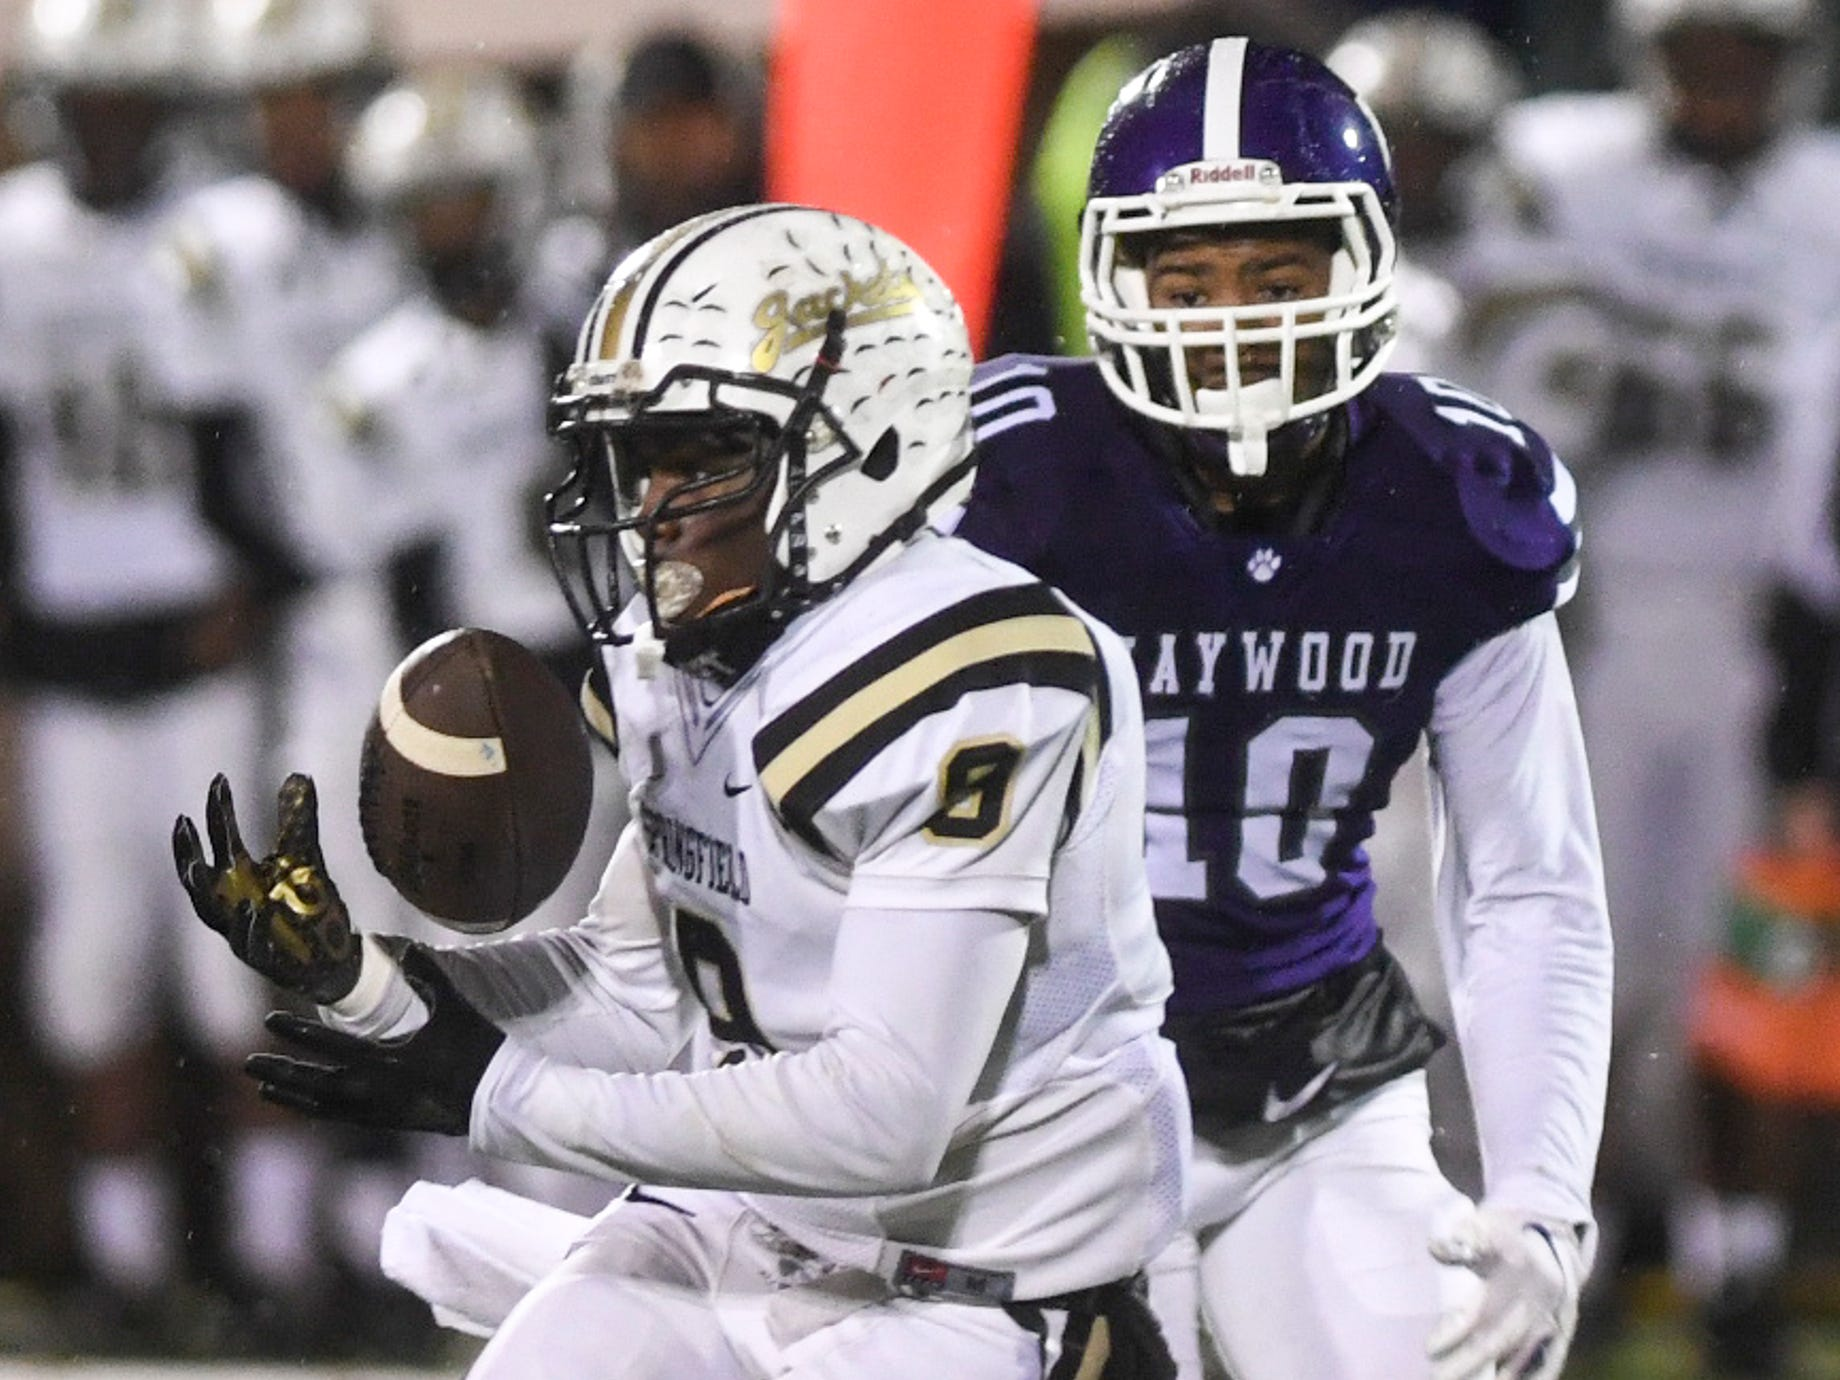 Springfield's Keith Jones makes a catch before being brought down by Haywood's Taylor Shields during their Class 4A semifinal game, Friday, November 23. Haywood defeated Springfield, 49-14.